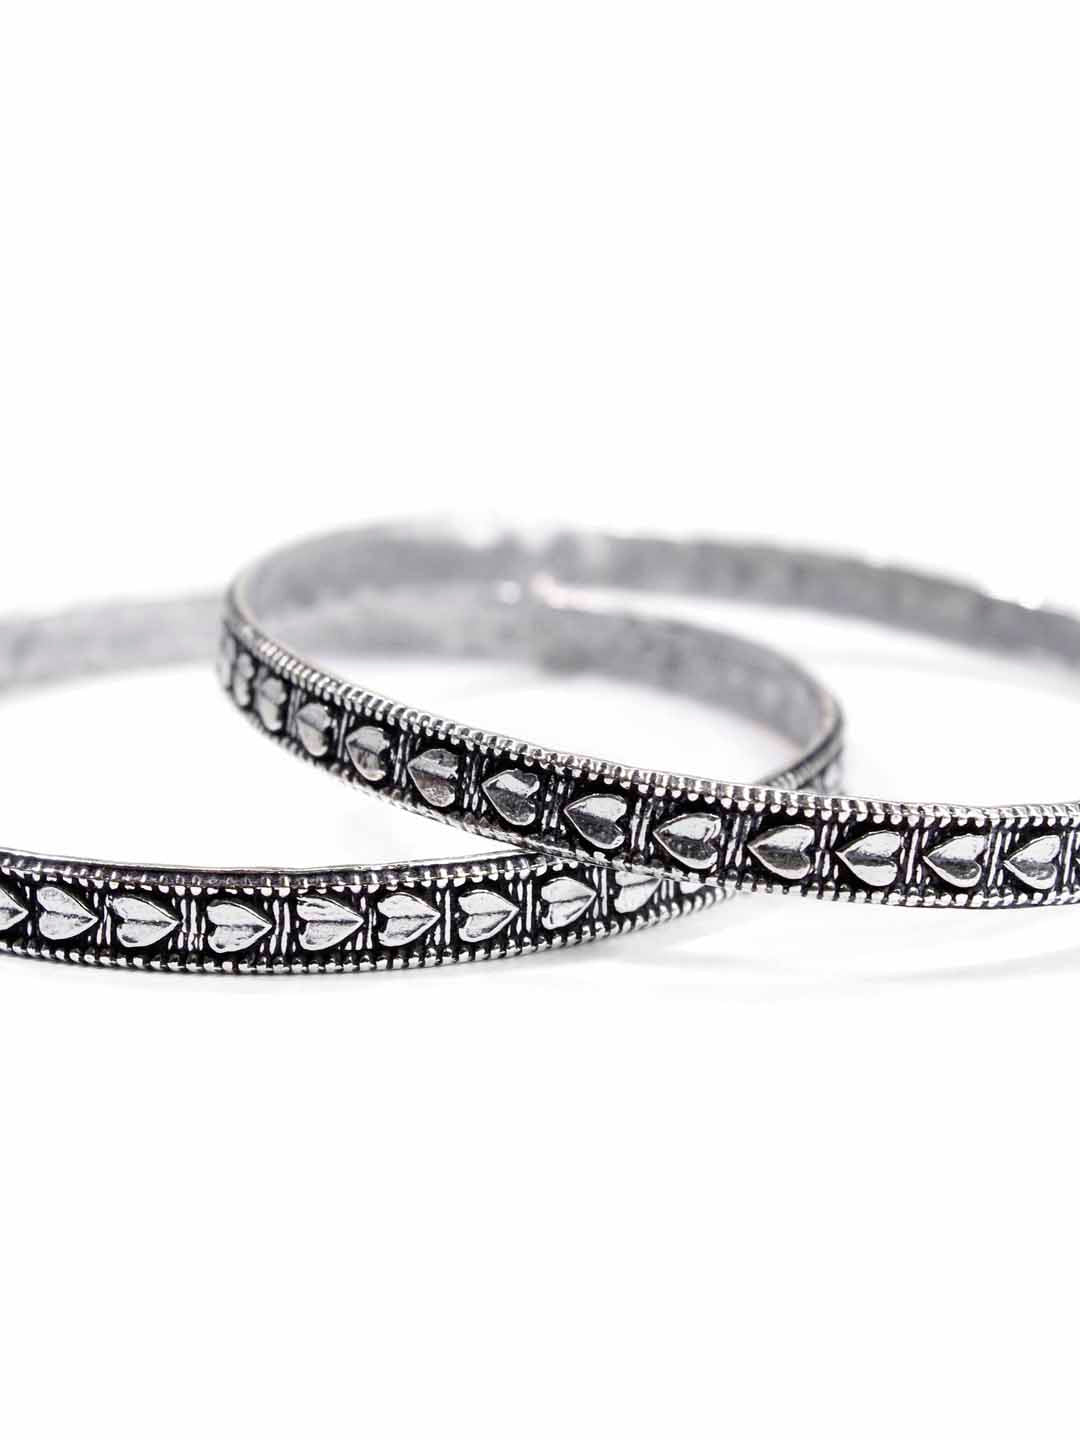 Oxidised German Silver Heart design light weight bangle